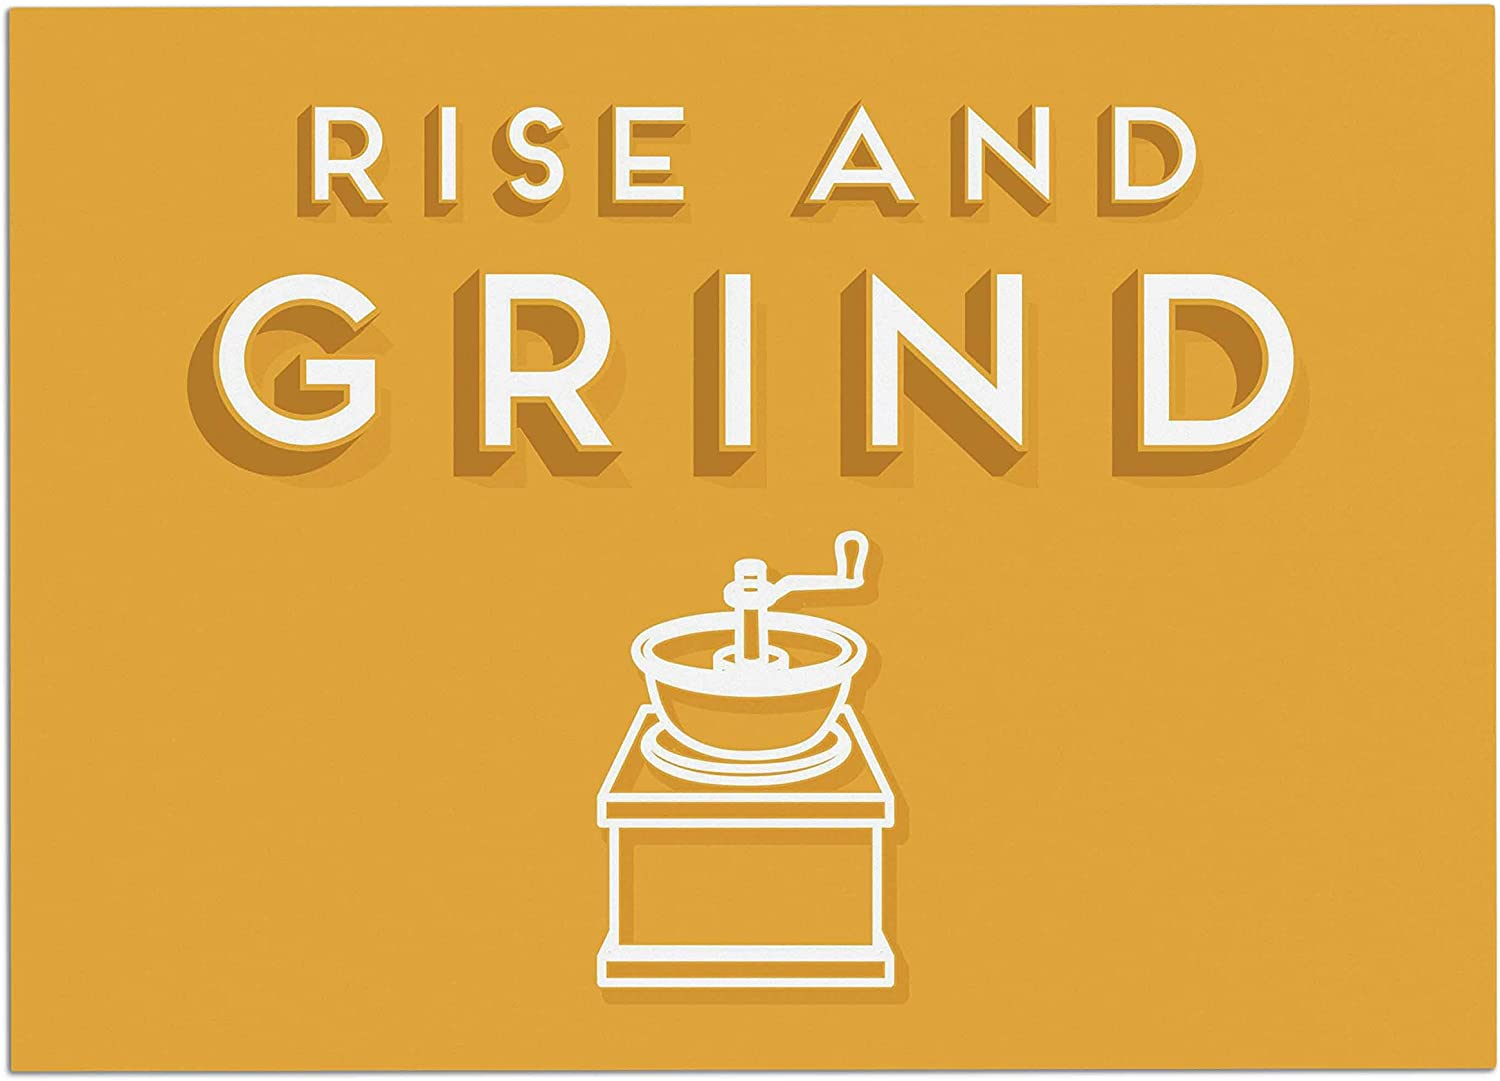 KESS InHouse BP1010ADM02 Busy Bree Rise and Grind gold Illustration Dog Place Mat, 24 x15